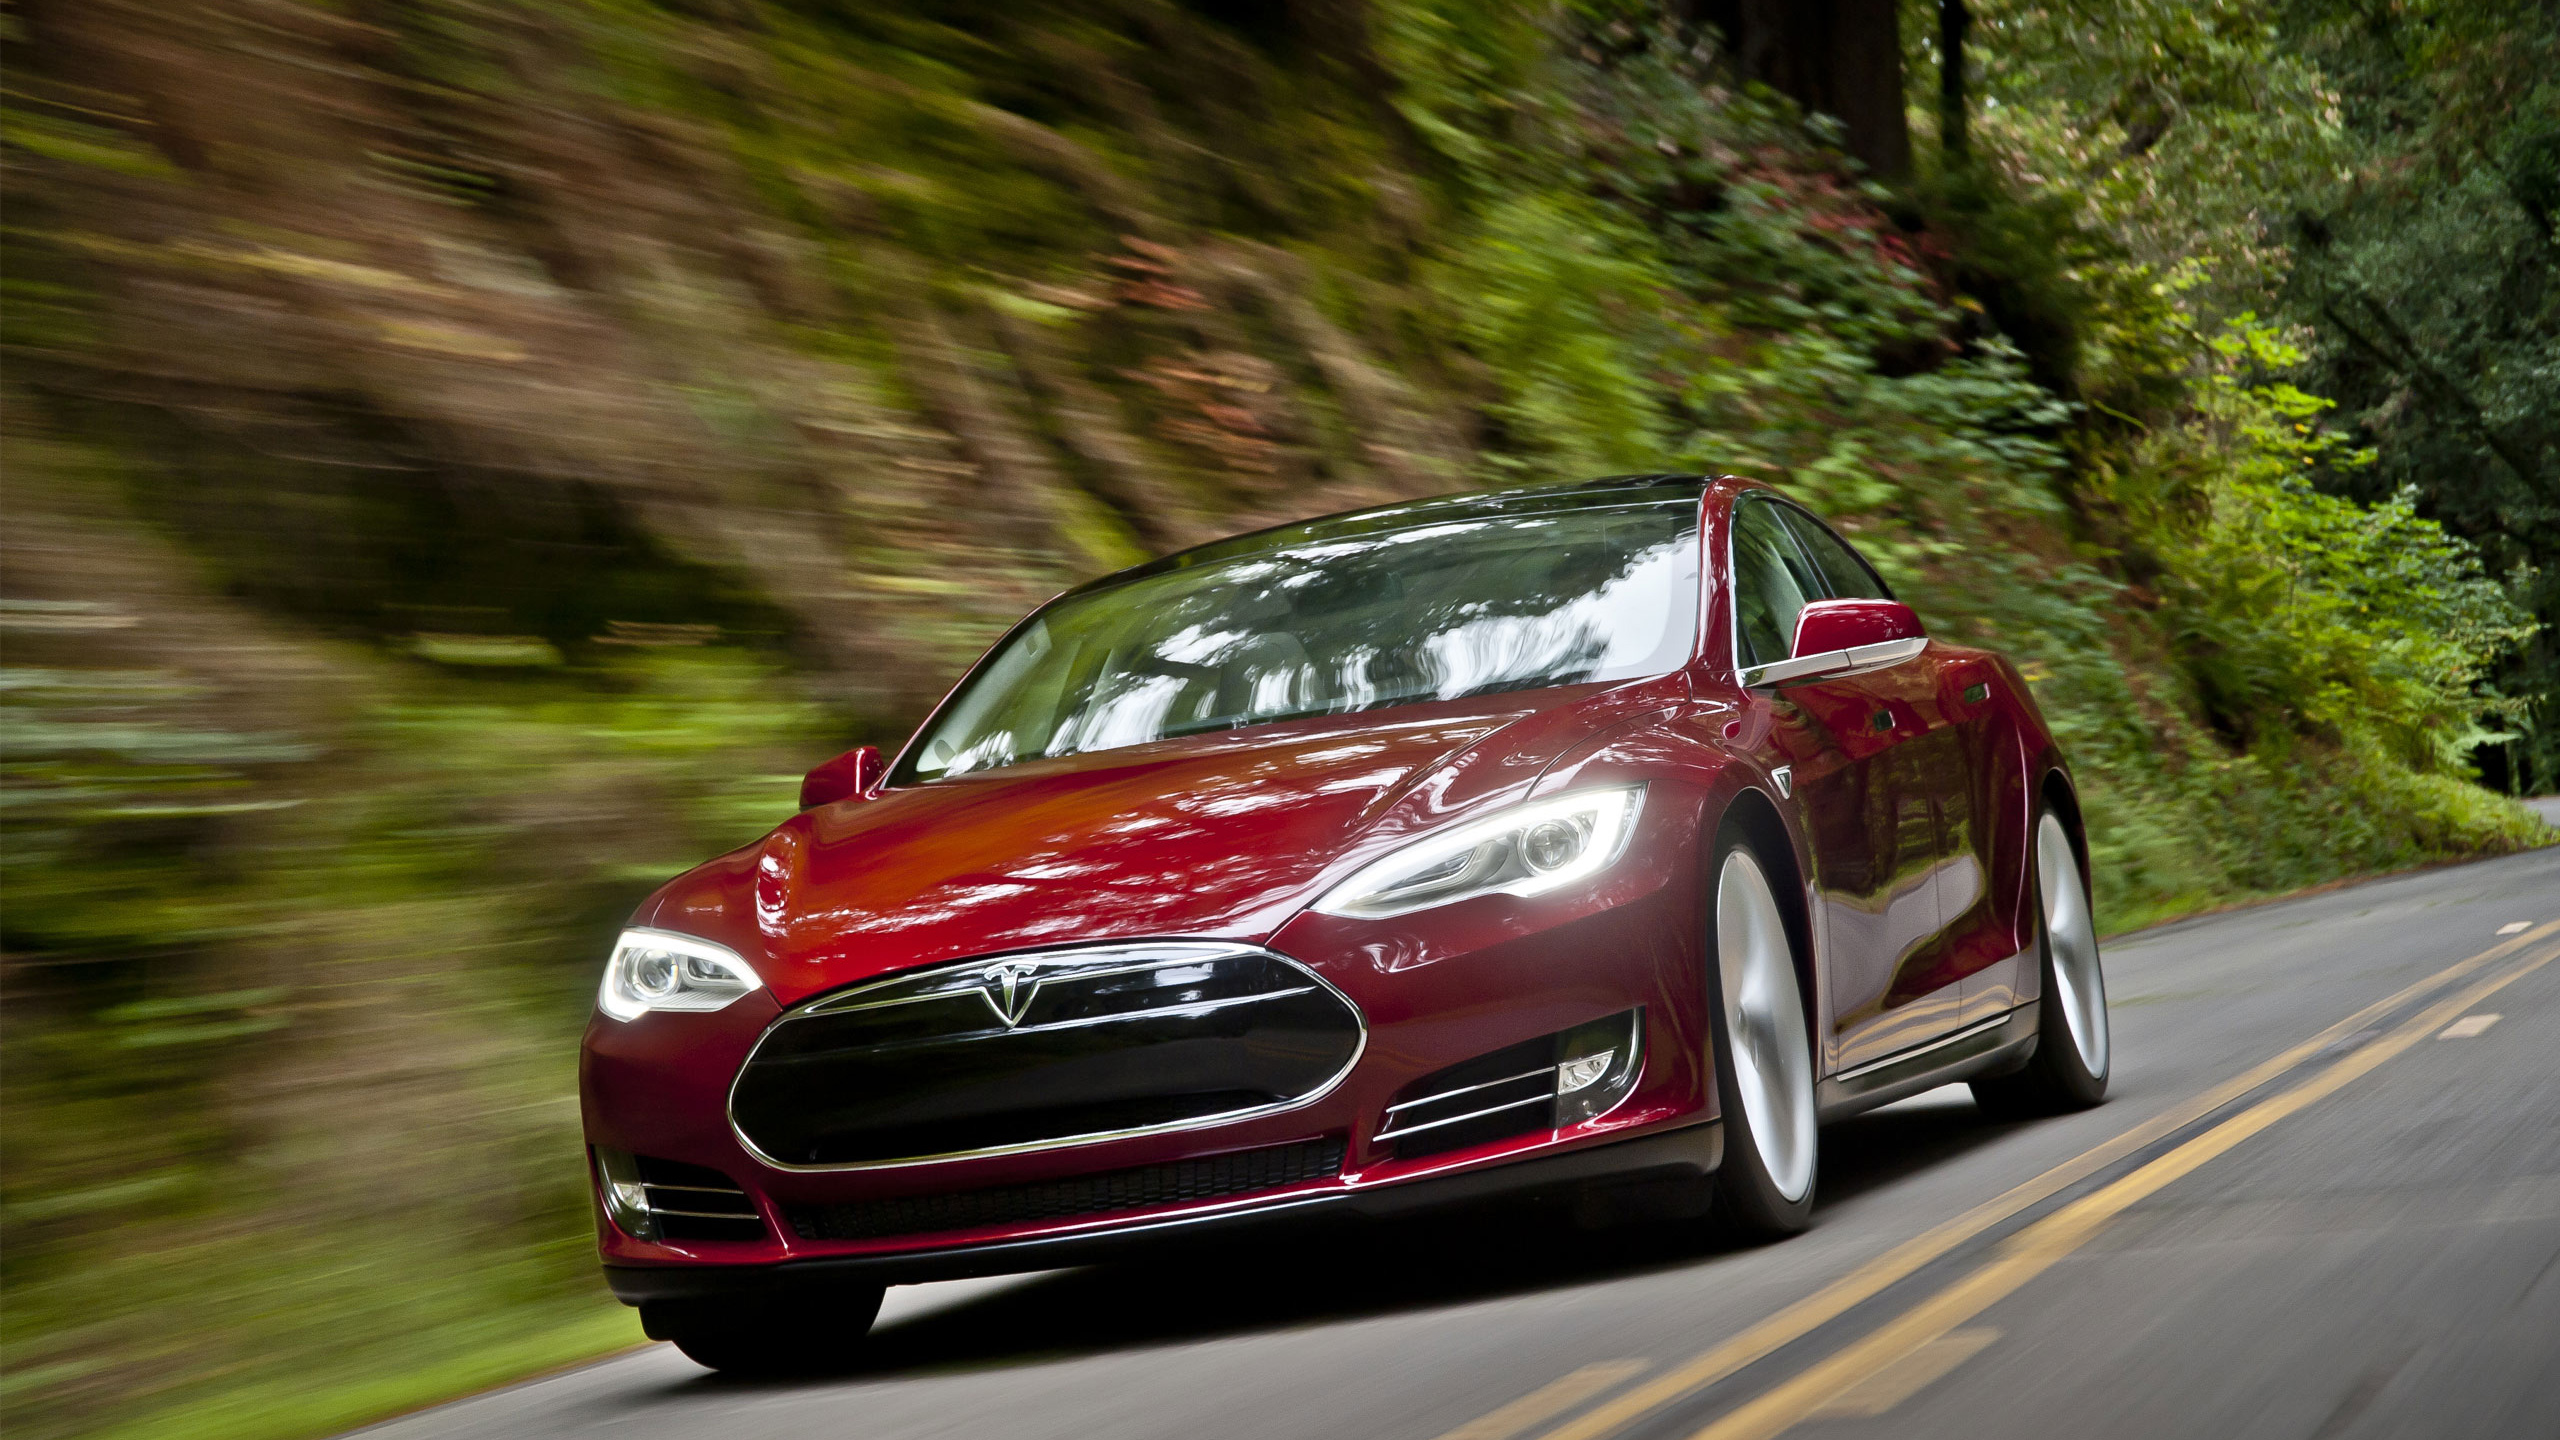 Tesla Model S Wallpaper HD